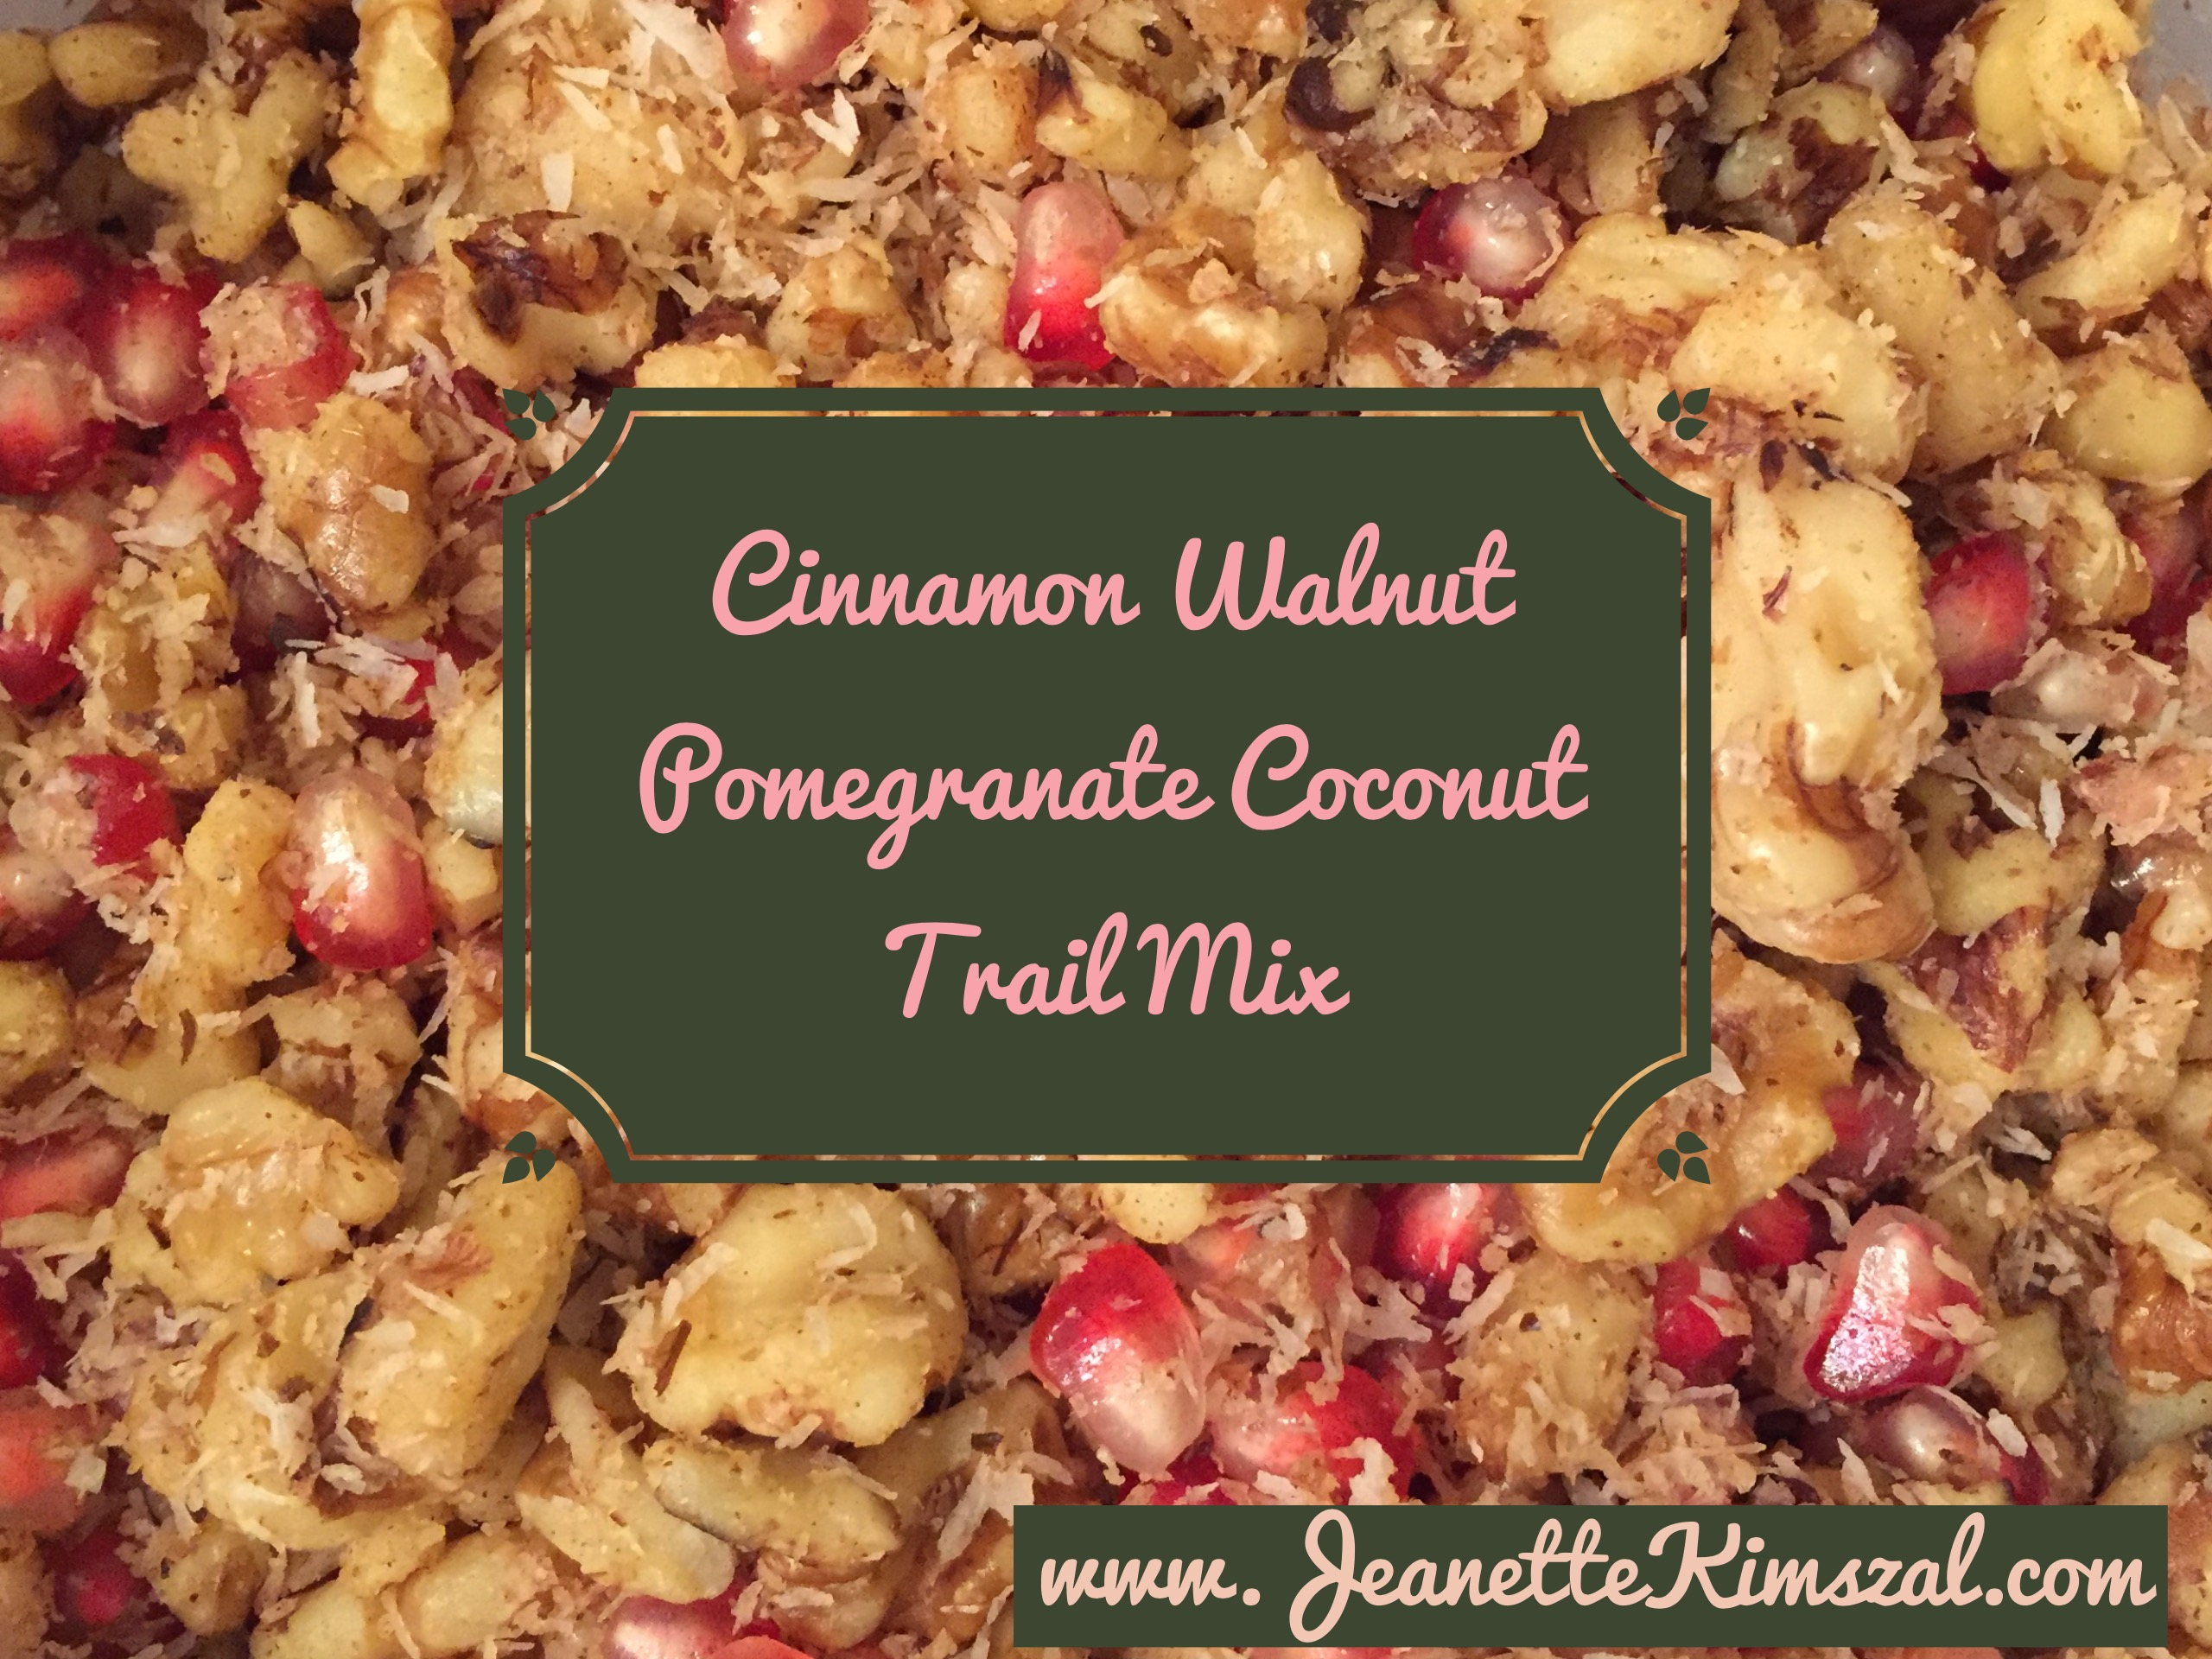 cinnamon-walnut-pomegranate-coconut-trail-mix